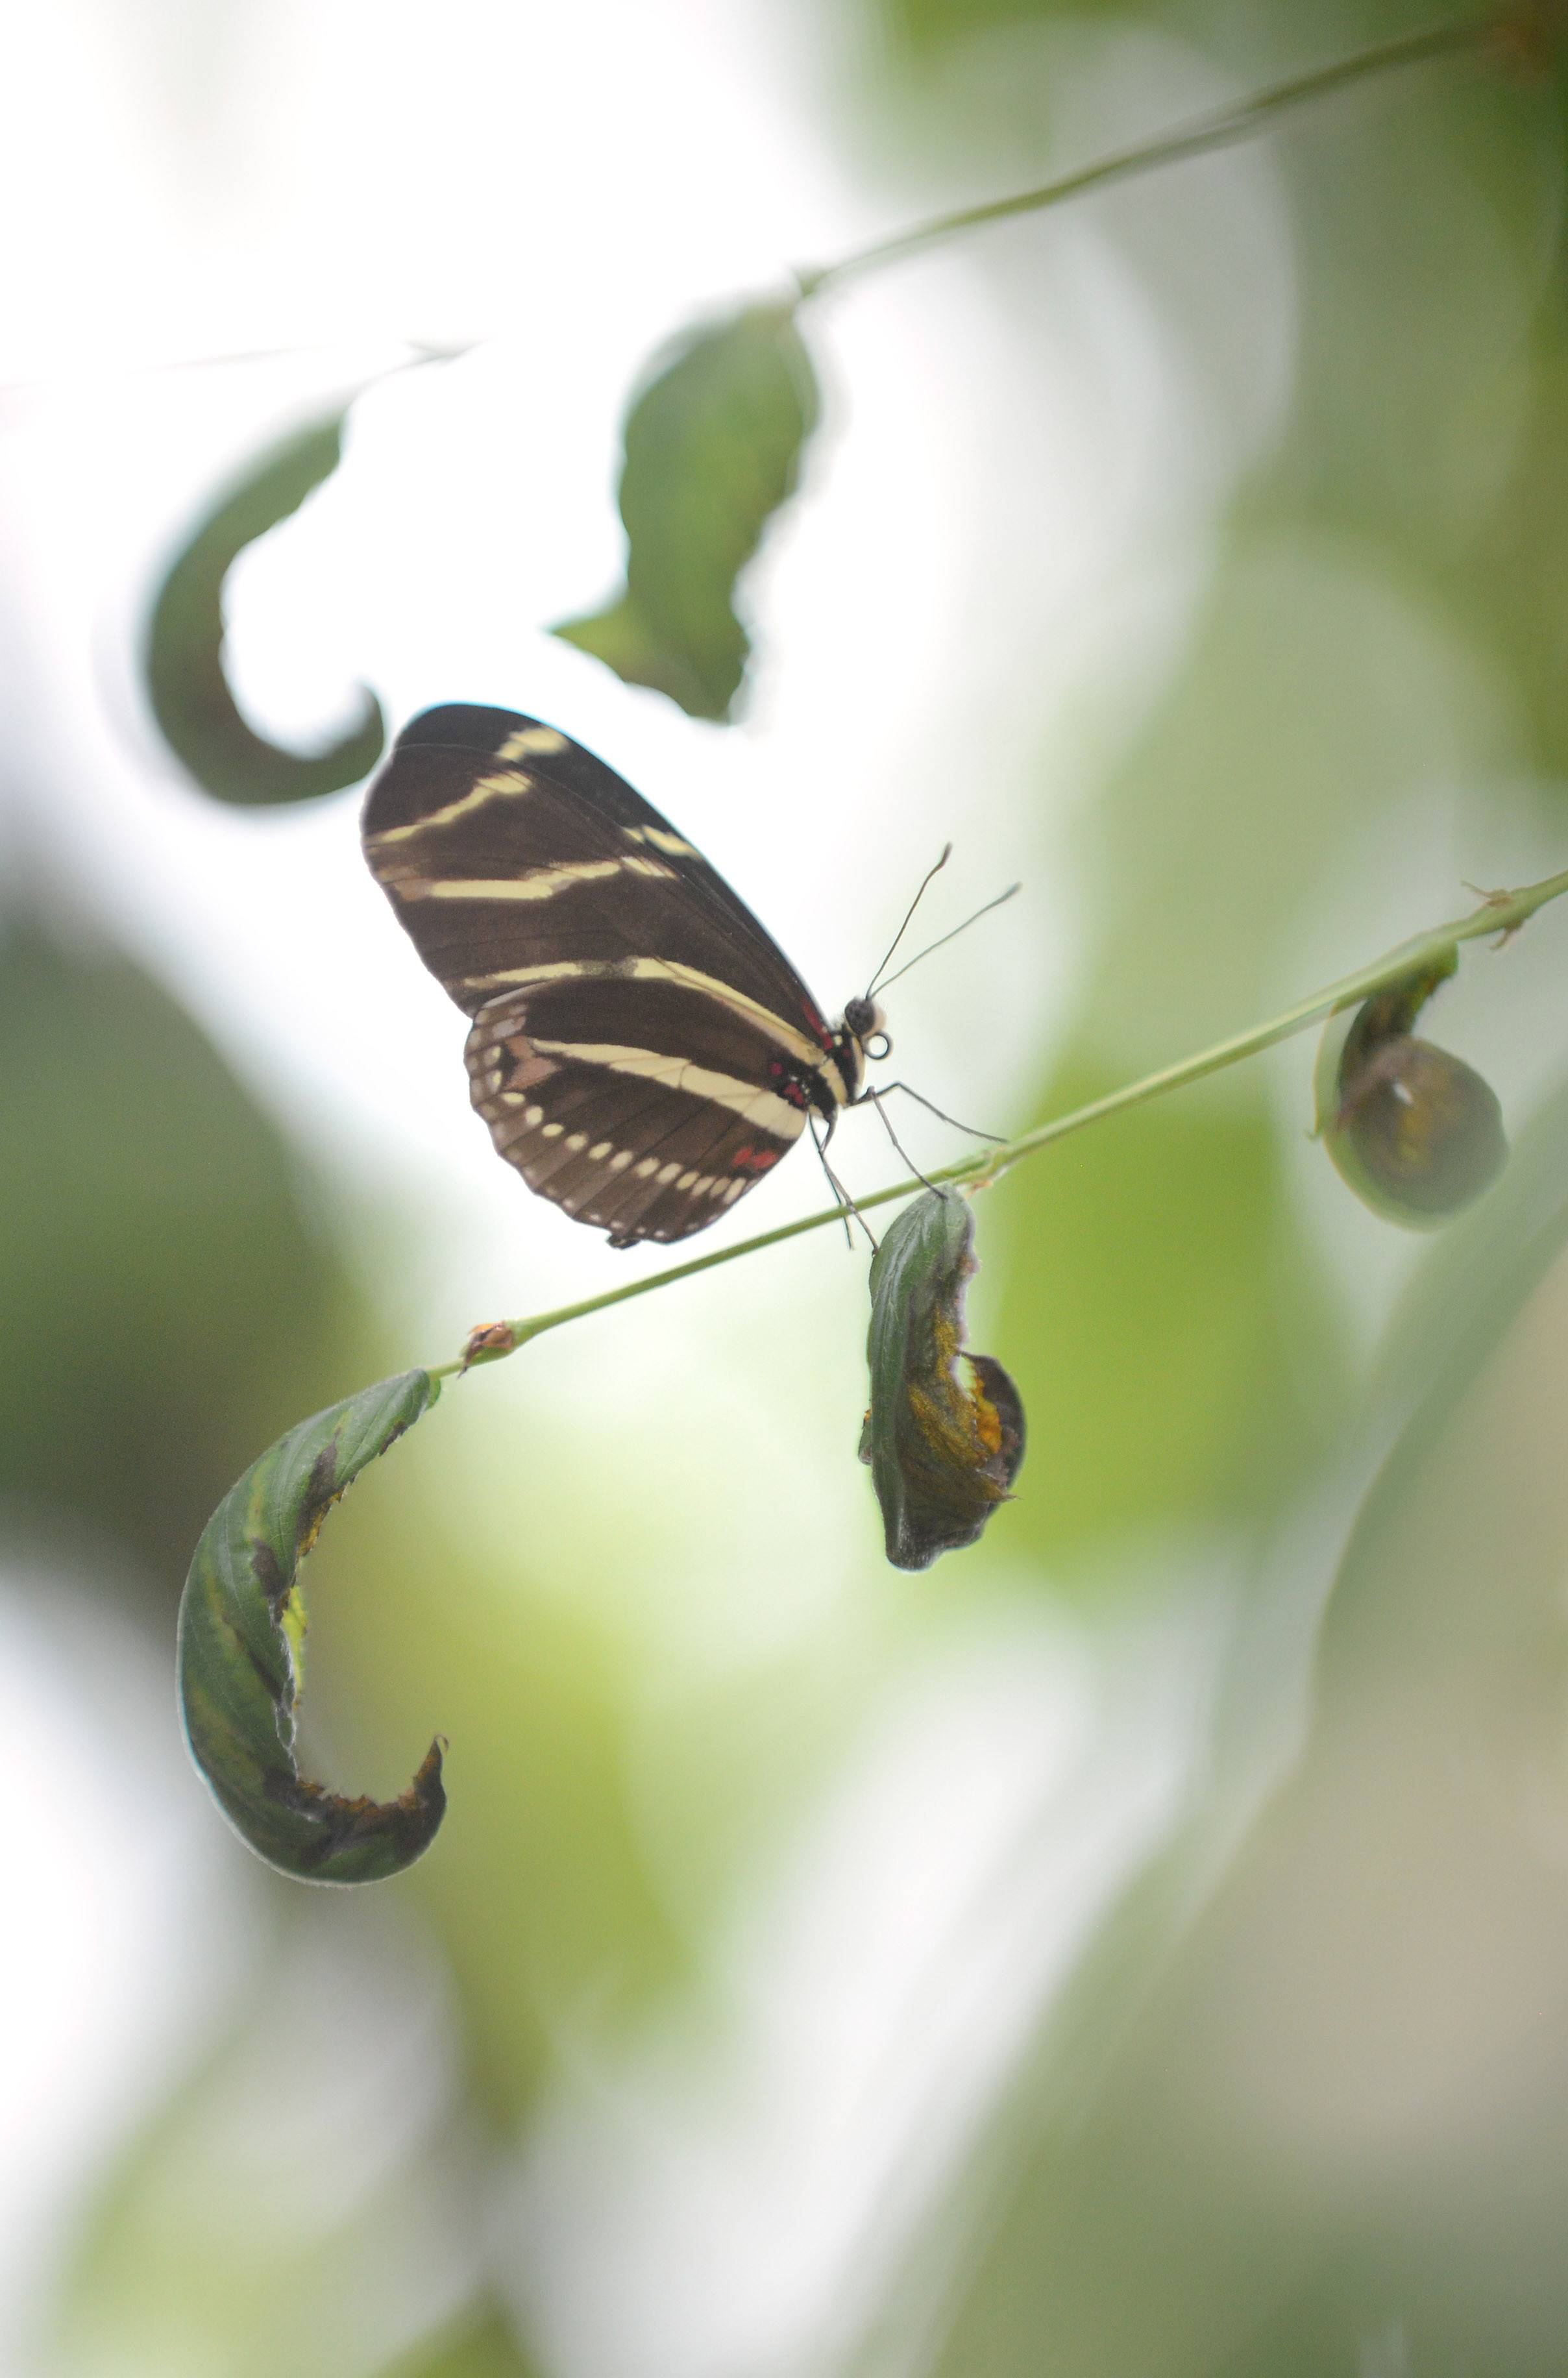 A Zebra butterfly perches in a tree at Peck Farm Park's Butterfly House in Geneva Wednesday.